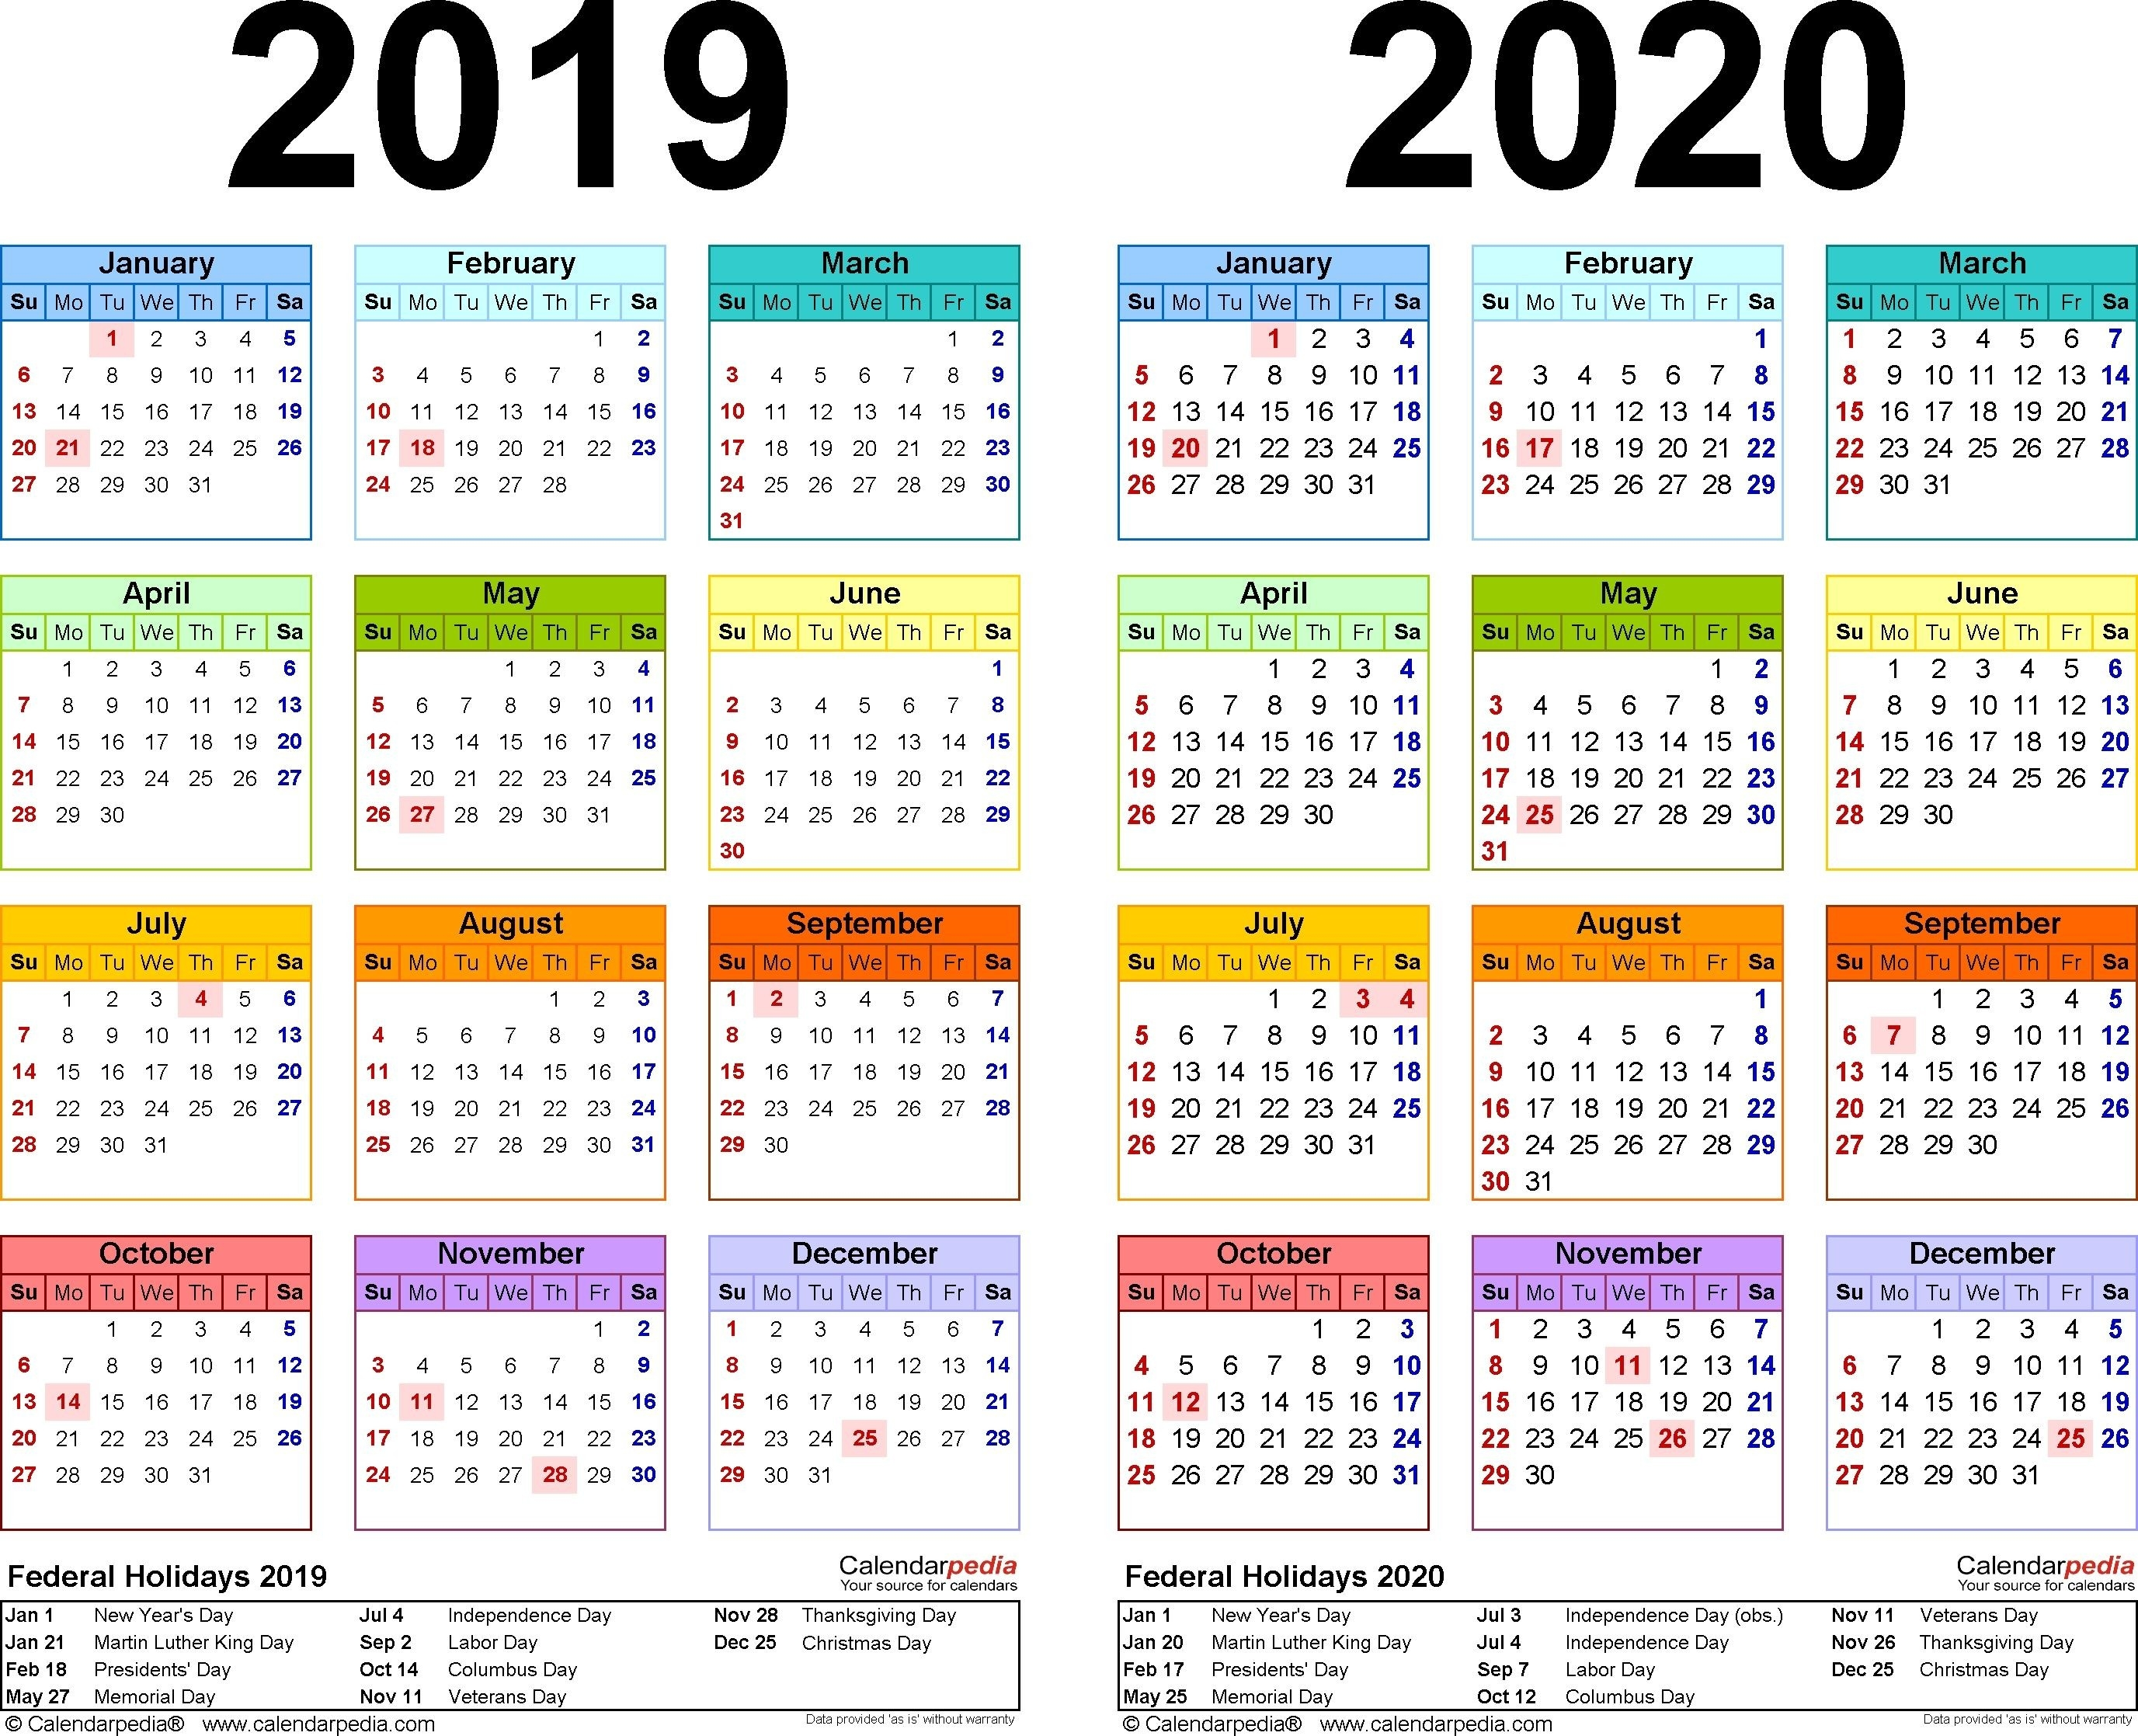 2019-2020 Calendar - Free Printable Two-Year Excel Calendars-Printable 2 Page Monthly Calendar 2020 Free